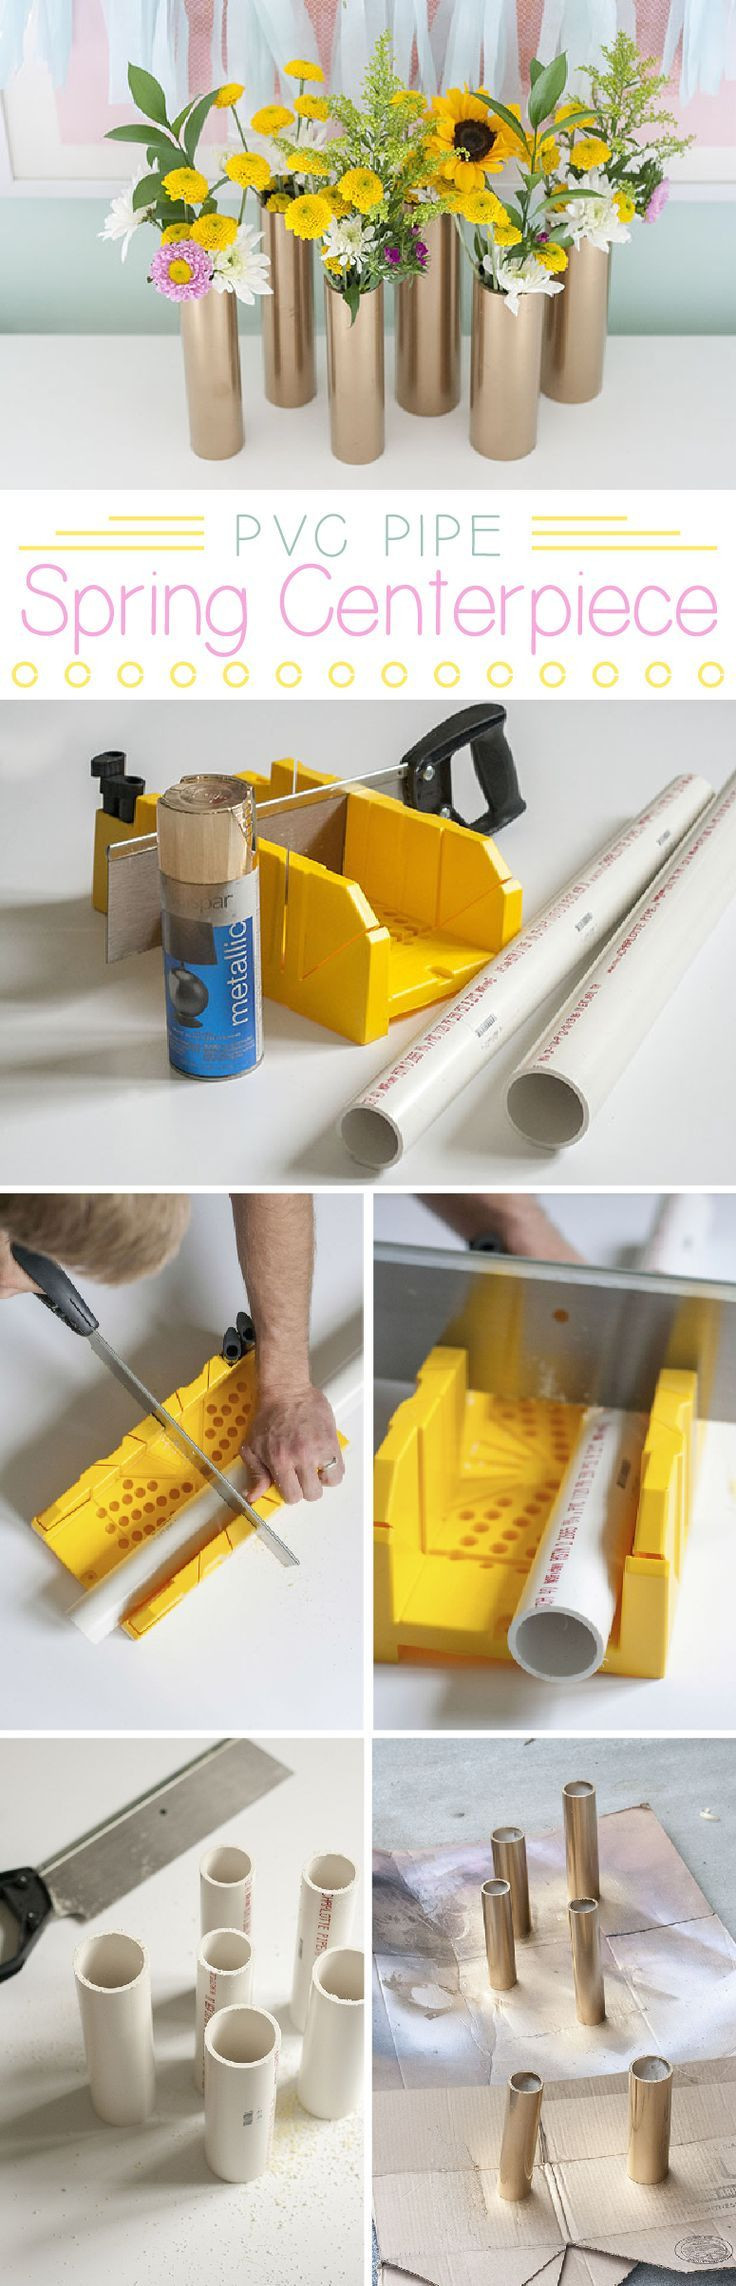 pvc pipe vase of 102 best diy pvc projects images on pinterest pvc pipes decks in make a modern spring centerpiece using just gold spray paint and pvc pipe